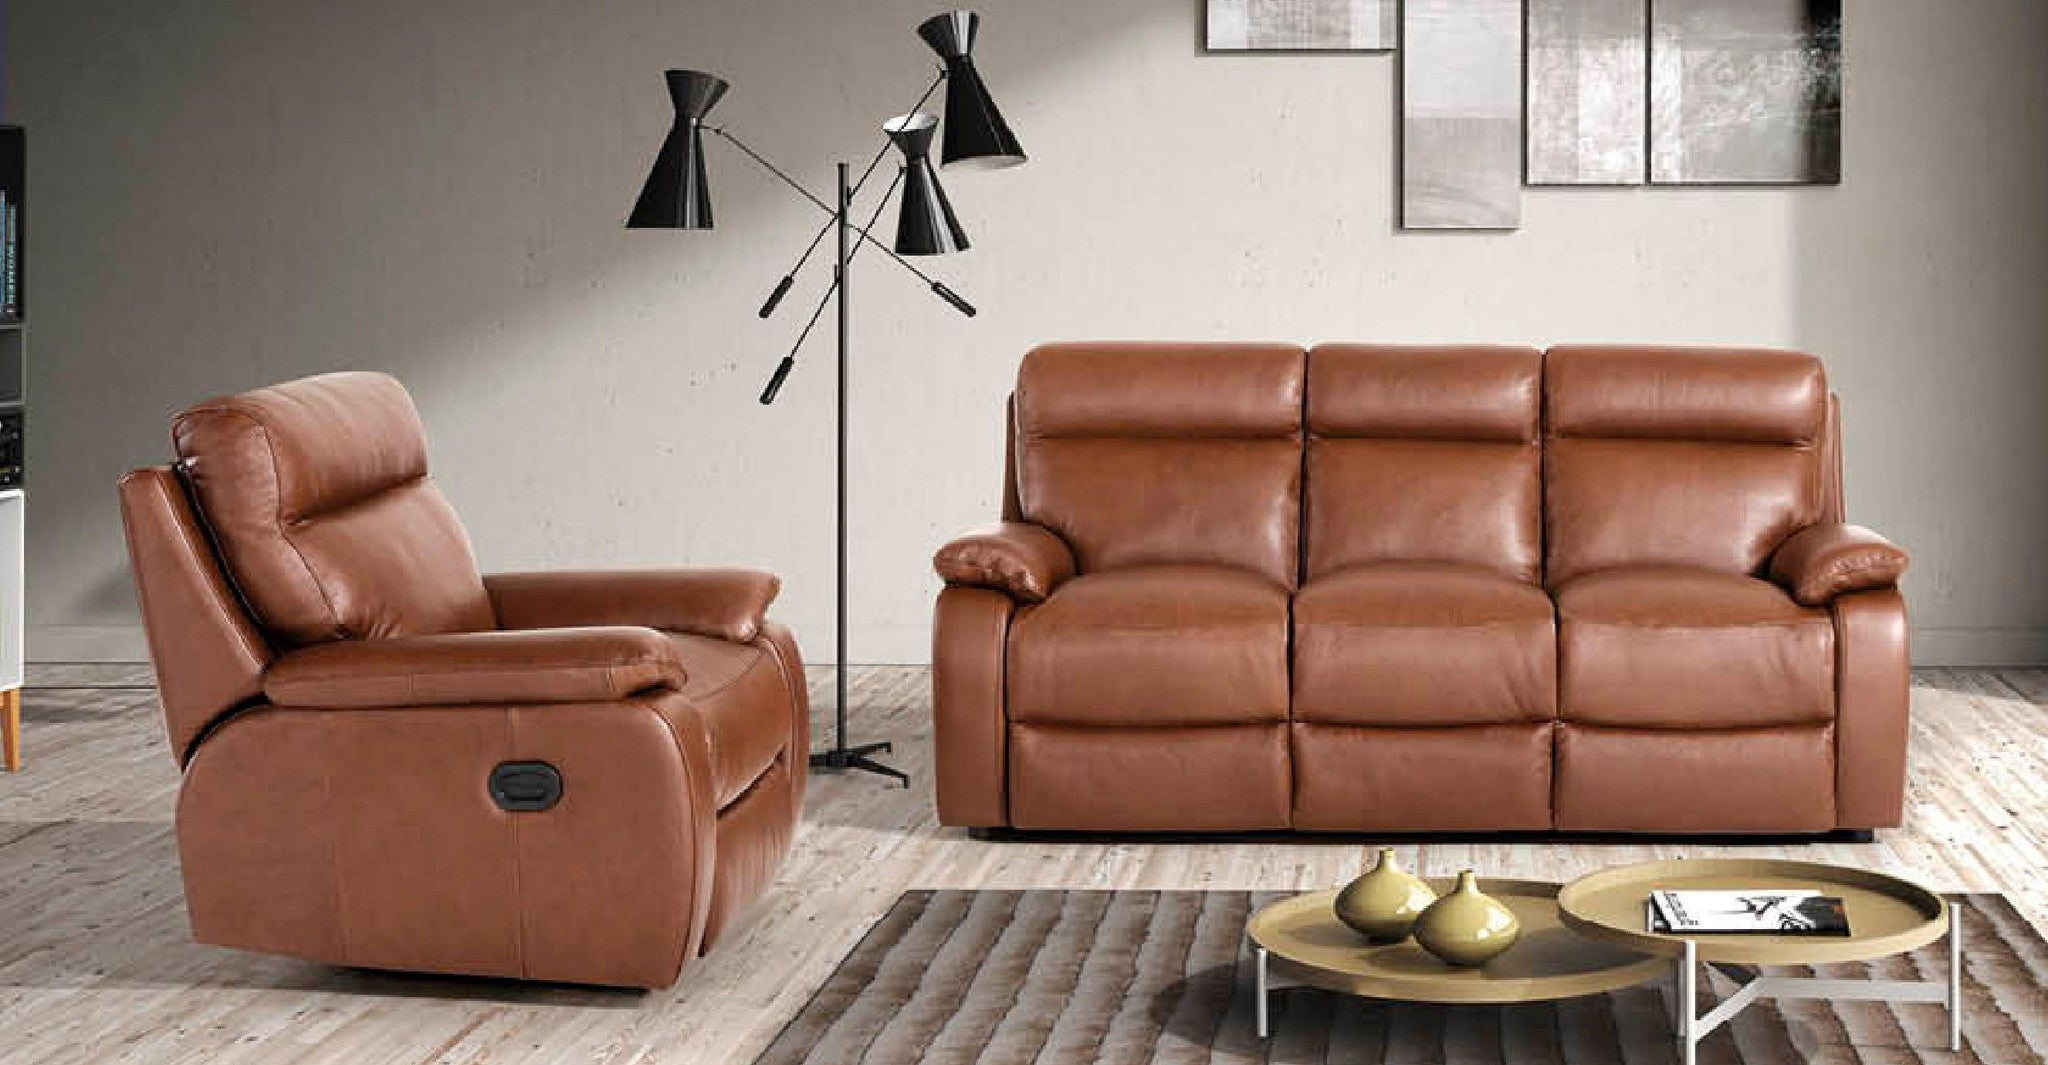 Italian Leather Sofas in Mansfield Woodhouse